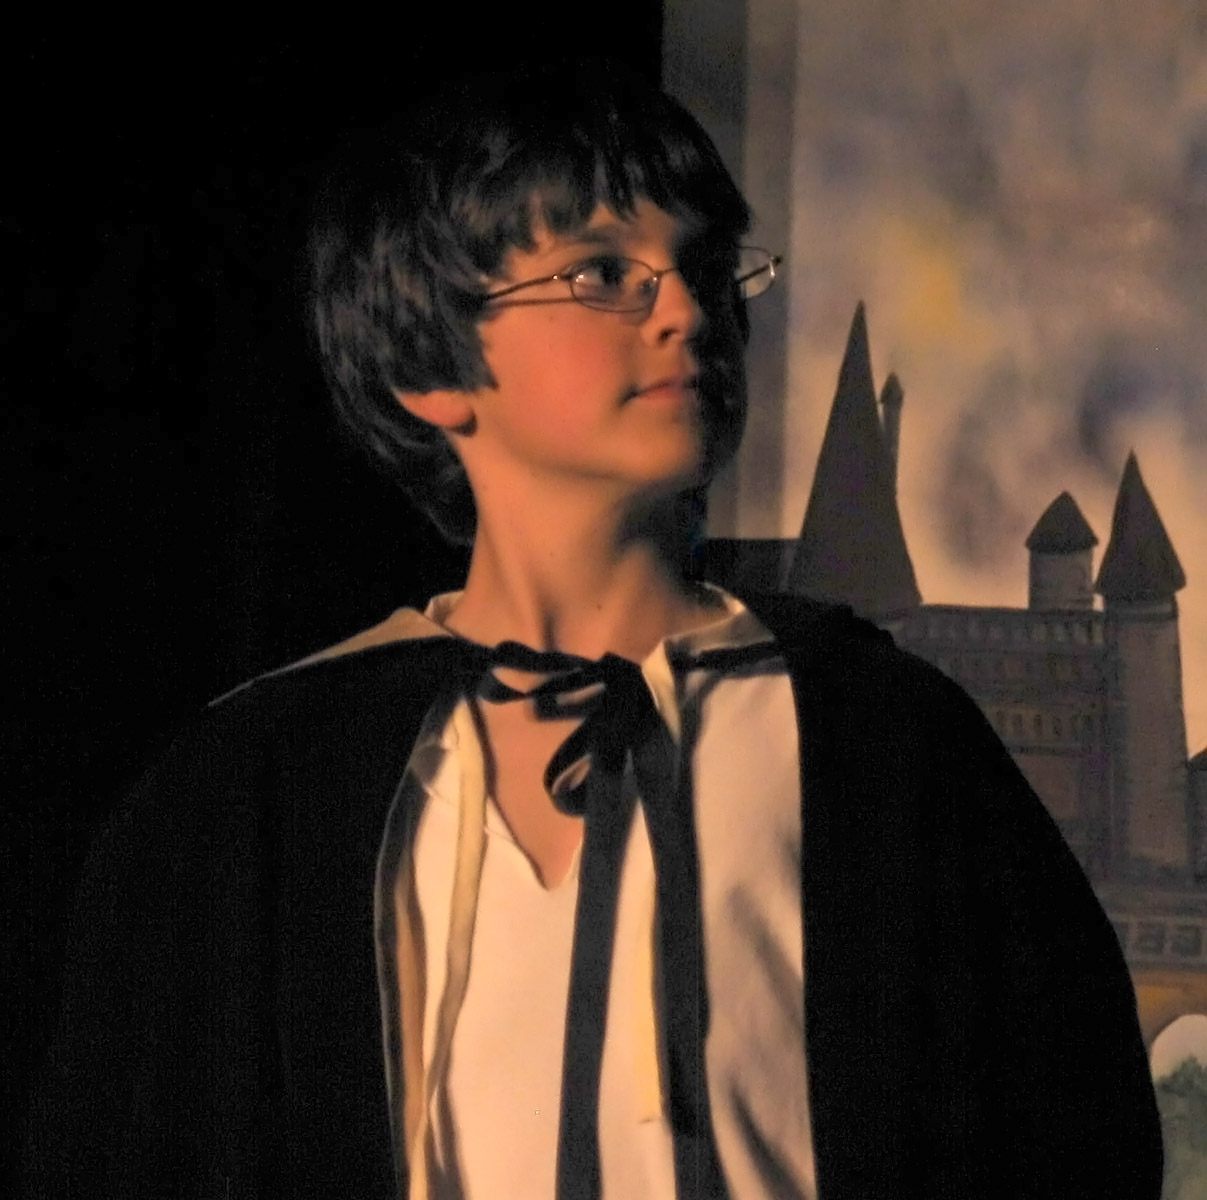 Harry Potter and the Deathly HallowsYoung James Potter